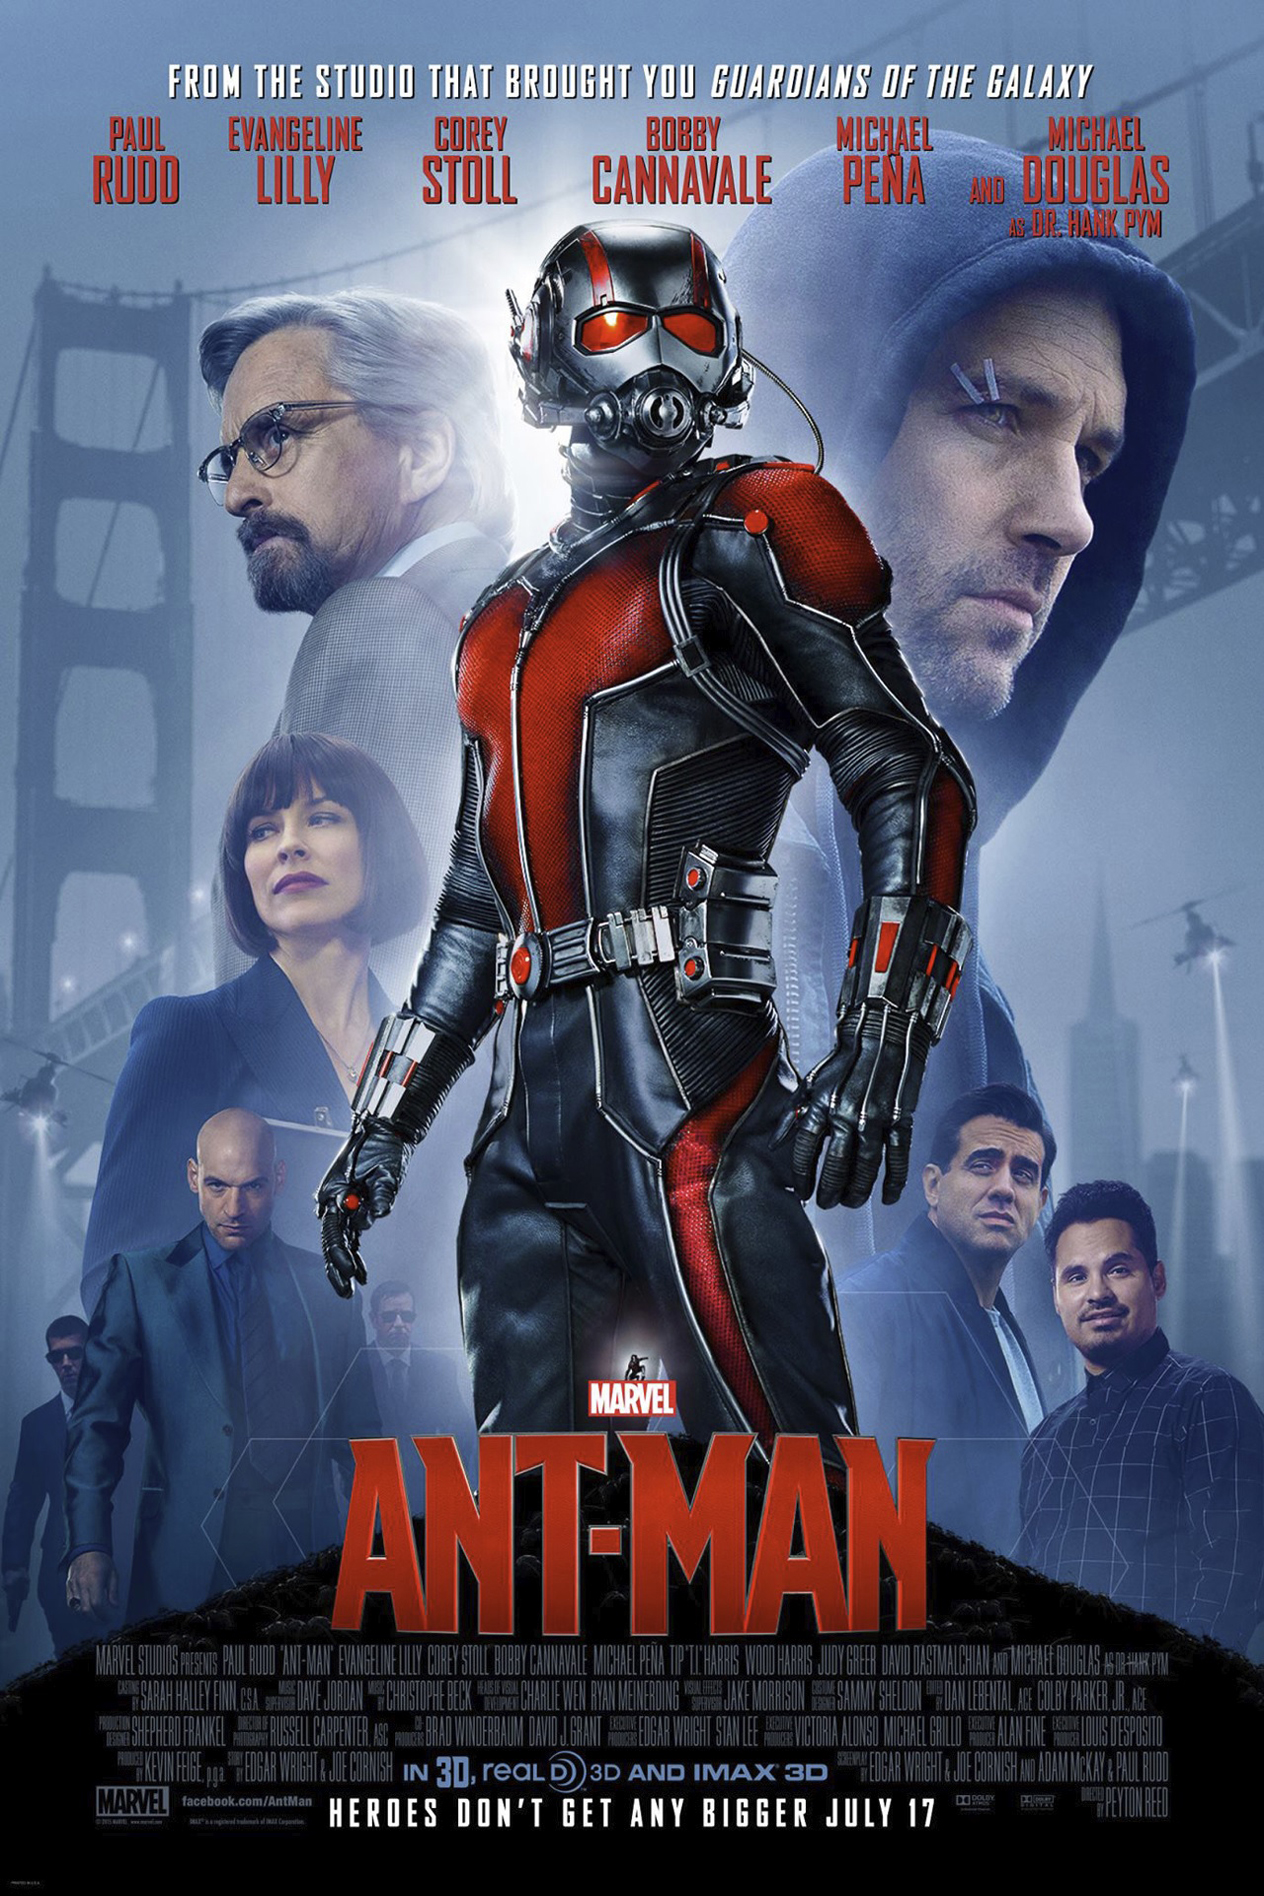 Ant-Man at an AMC Theatre near you